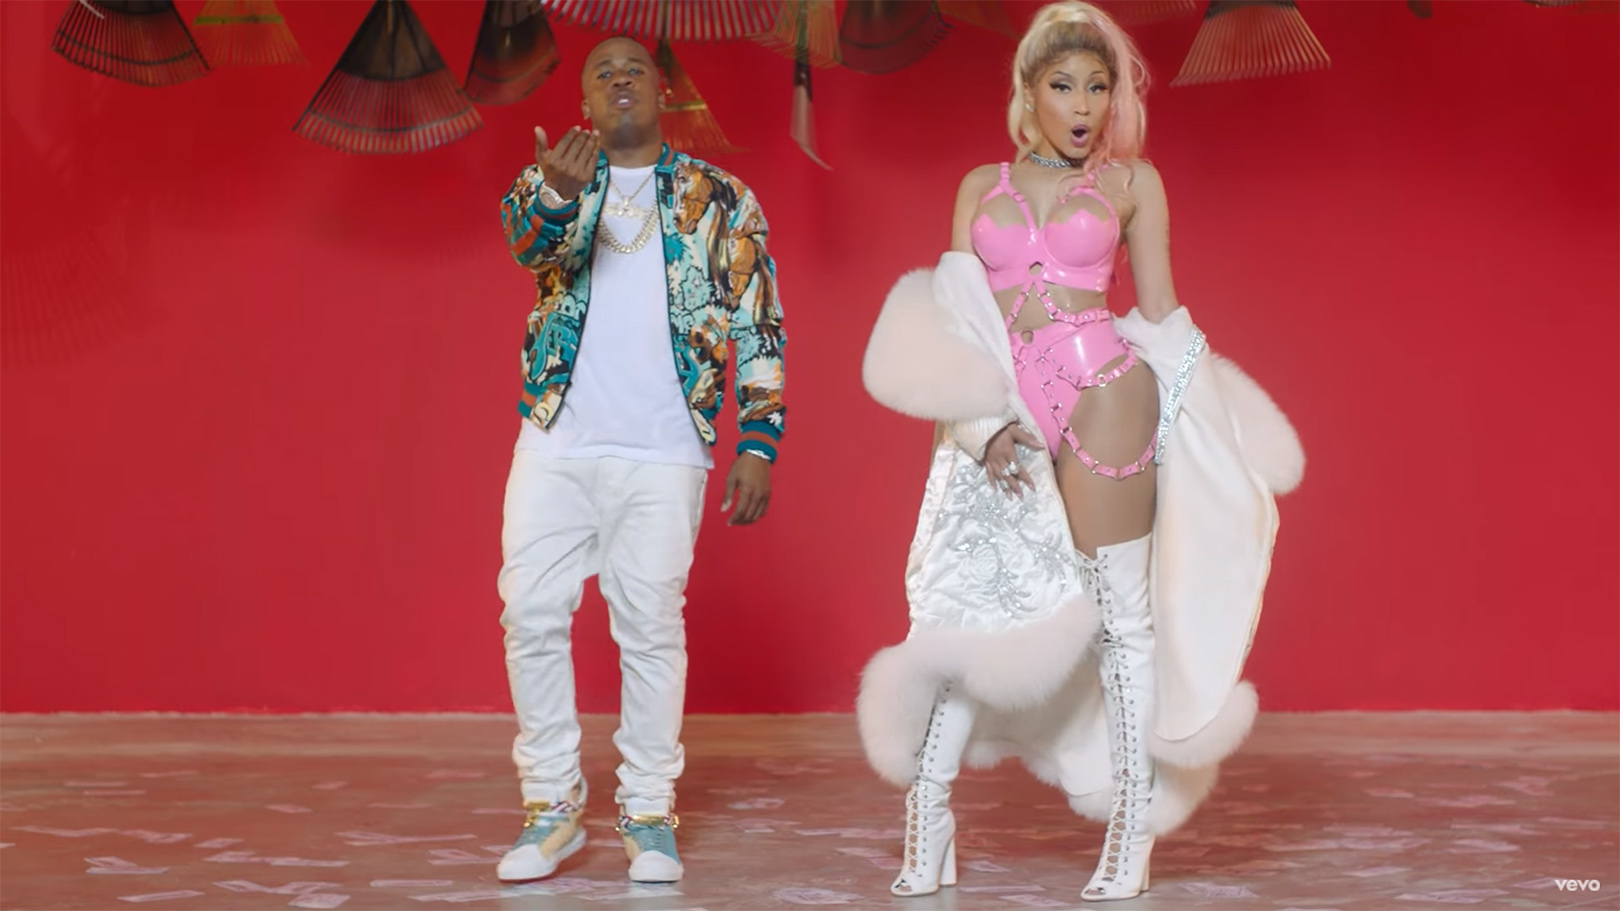 nicki_minaj_video_inset9